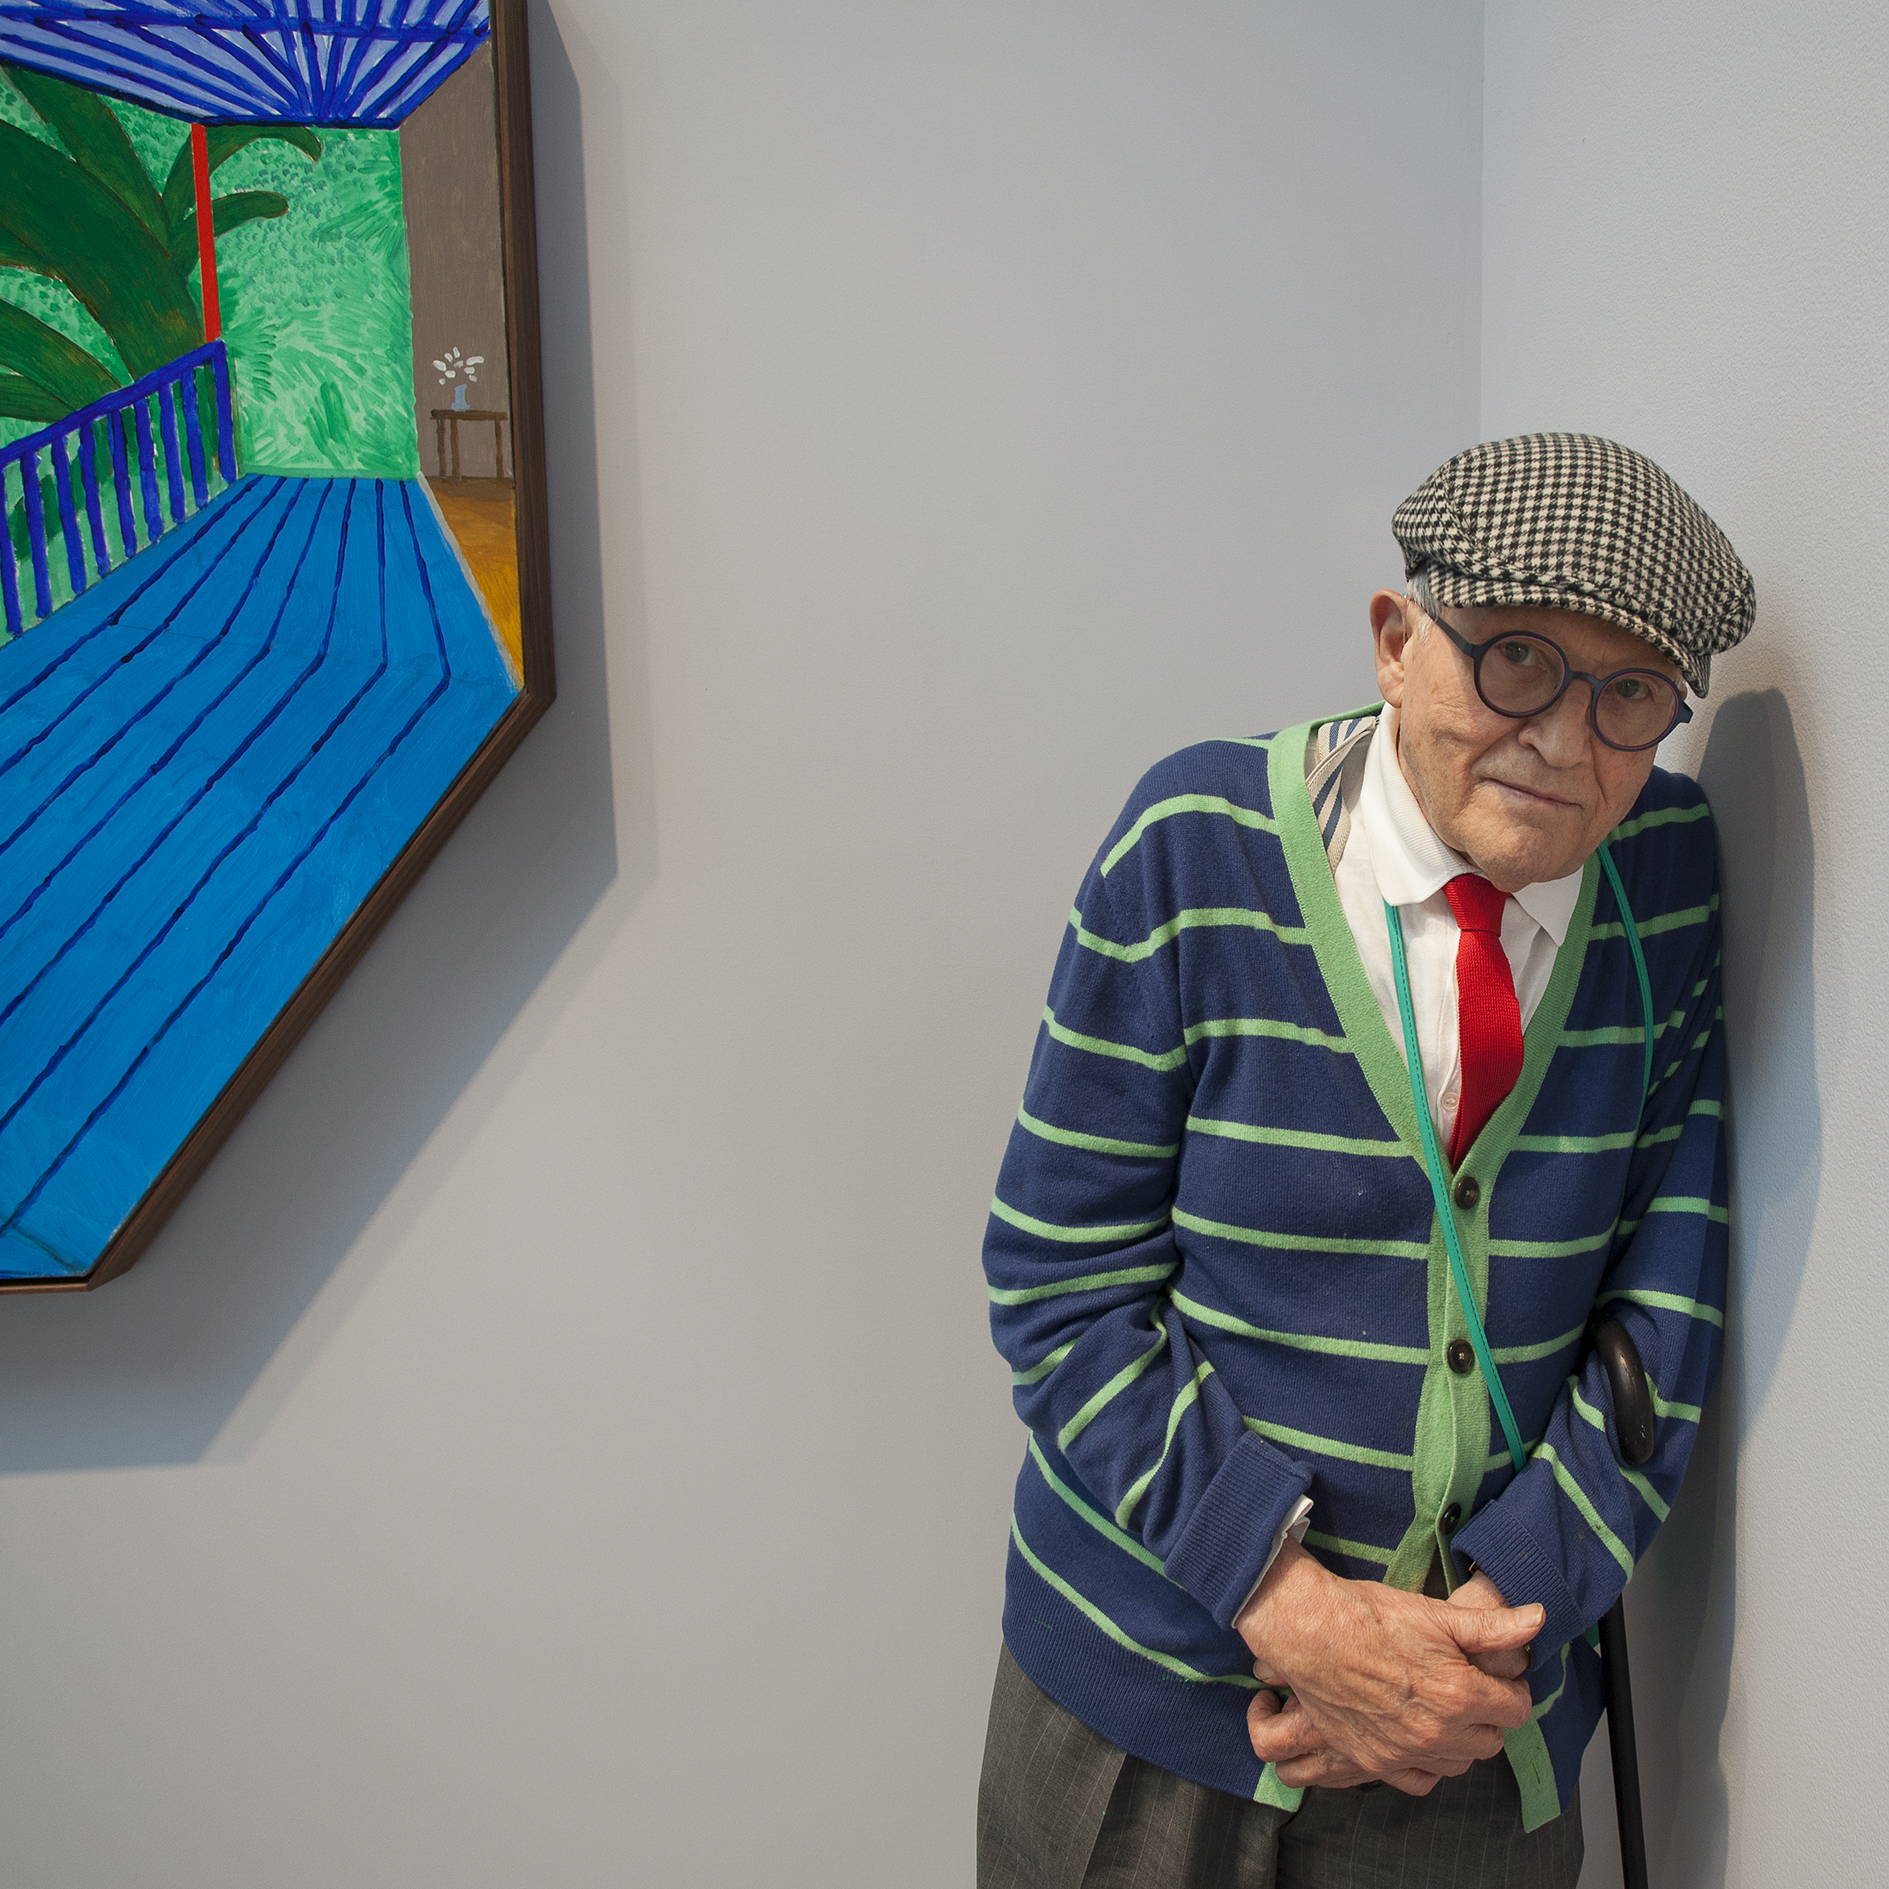 Sir Hockney